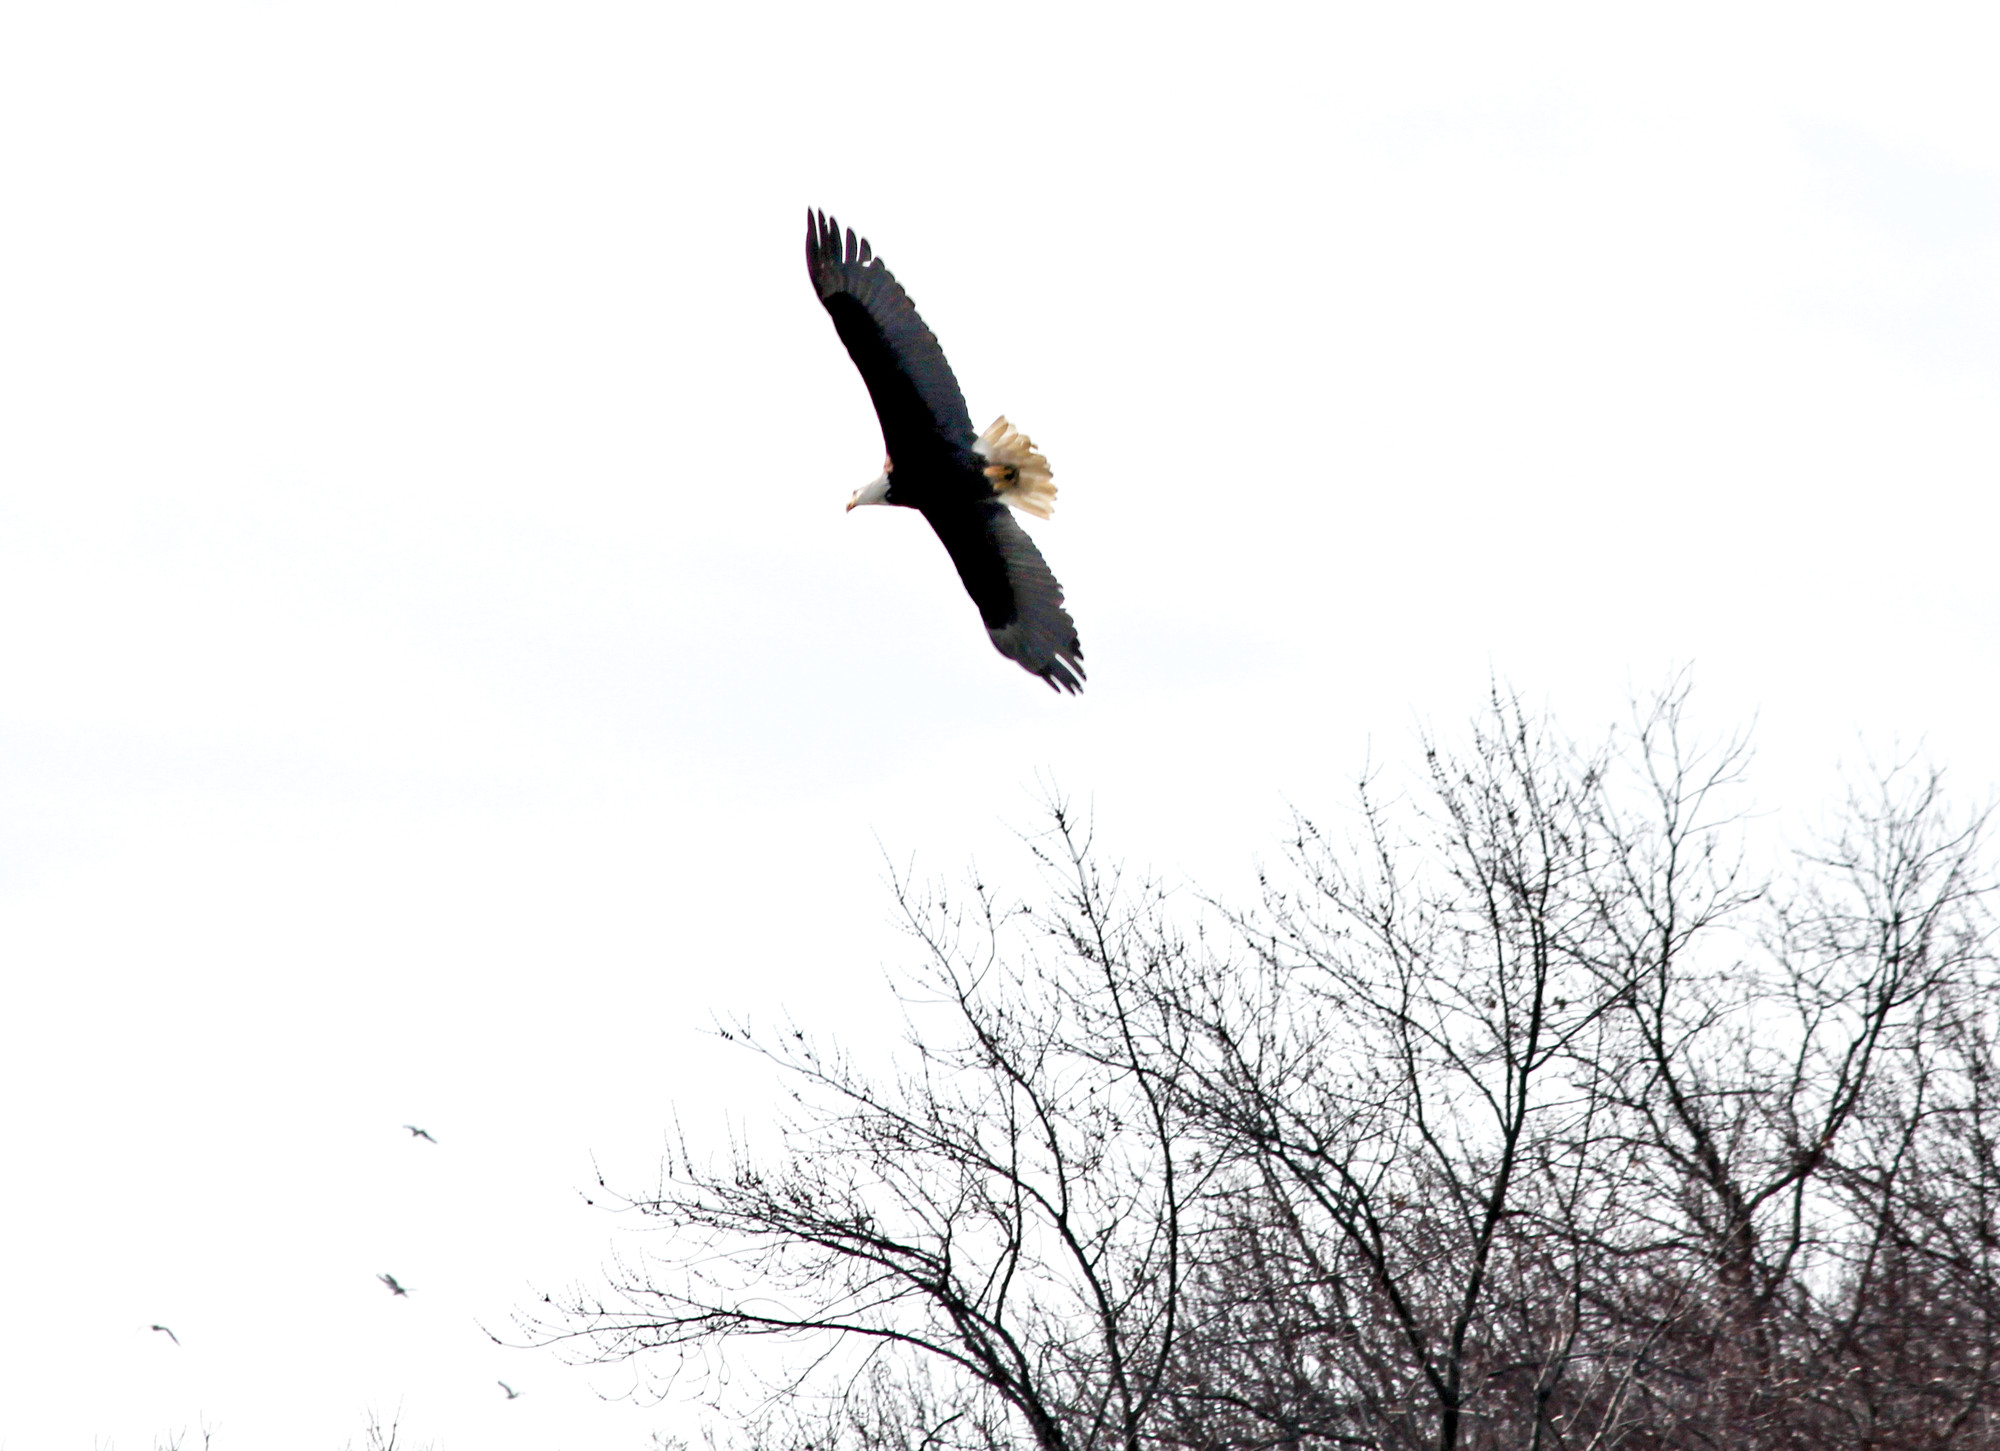 A majestic bald eagle soared above Hempstead Lake Park this week. 